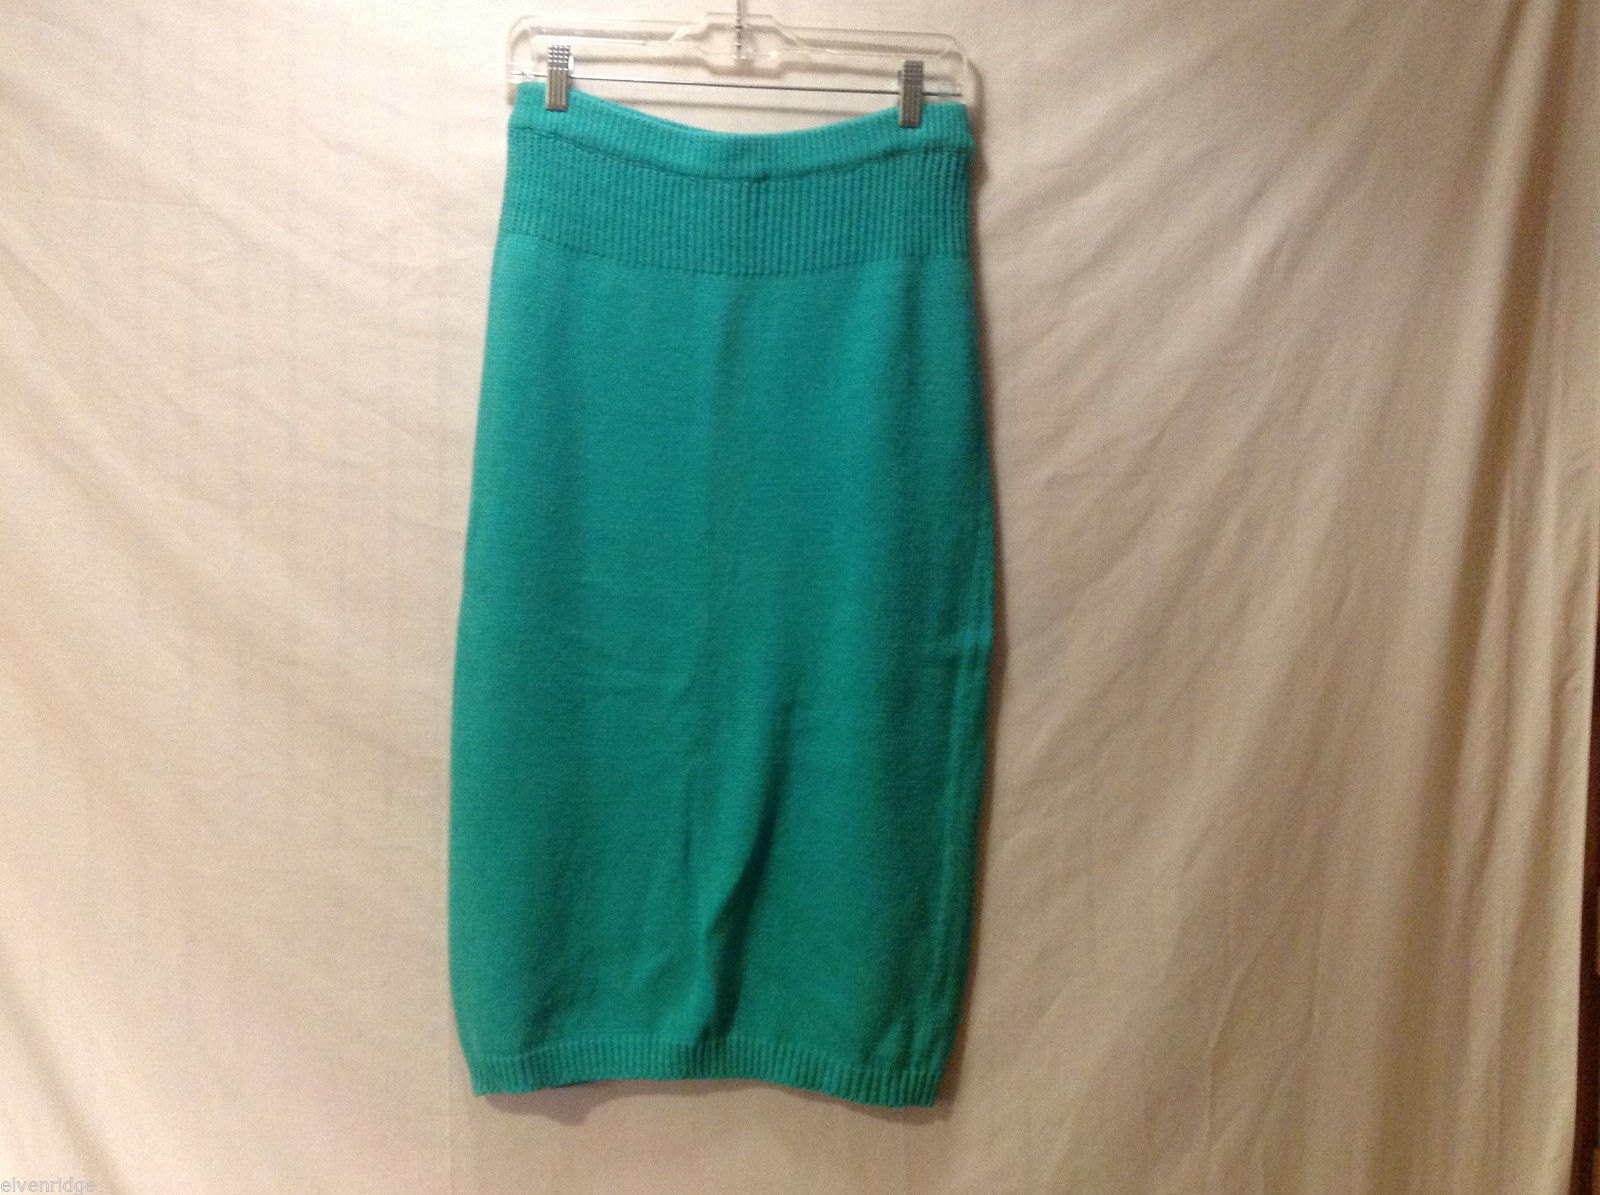 Chaus Women's Size M Pencil Skirt Jade Green Stretchy Knit w/ Ribbed Waist Trim